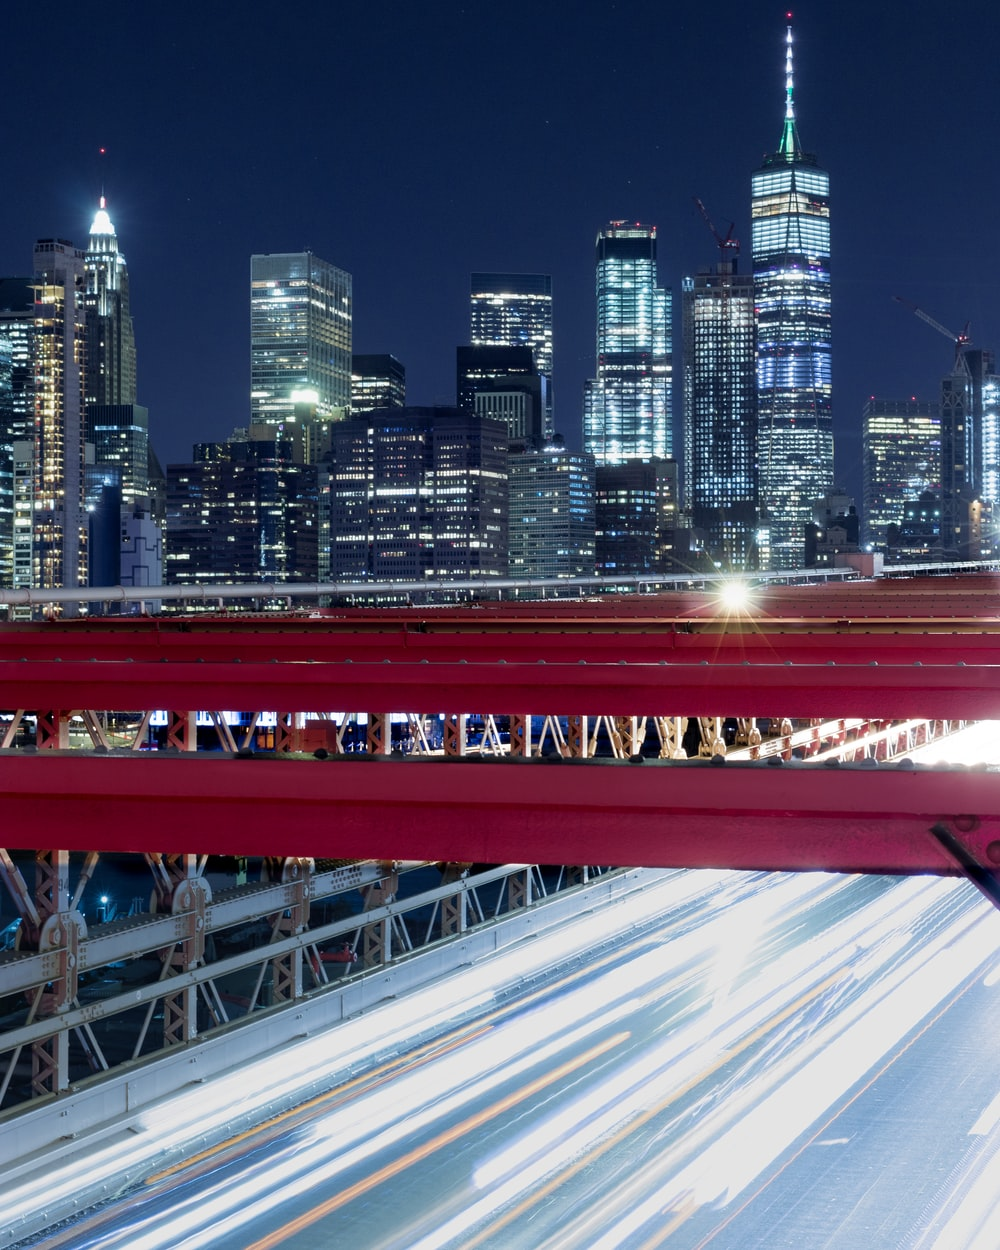 red bridge over city skyline during night time